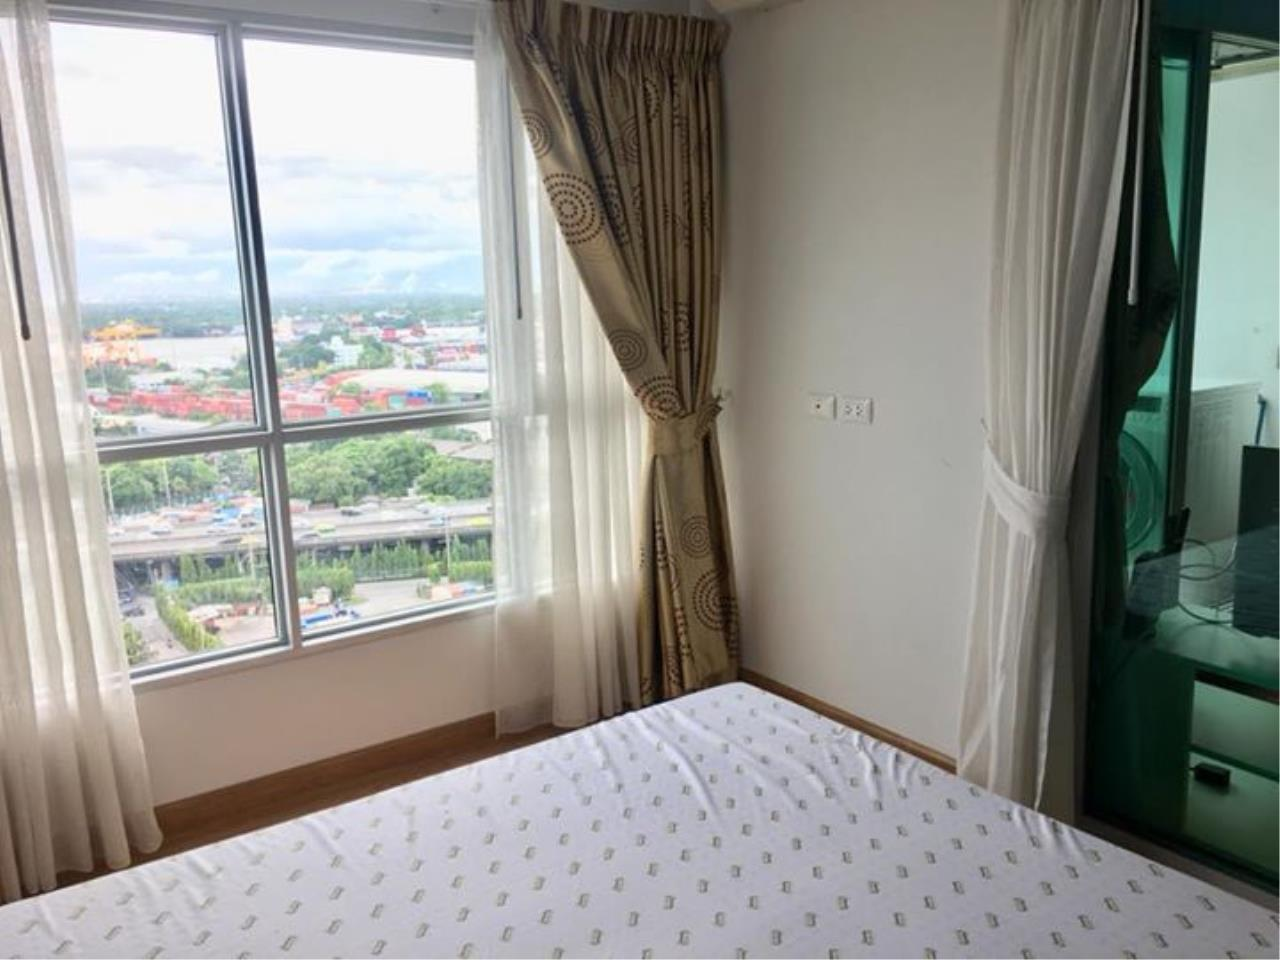 Quality Life Property Agency's S A L E !! ASPIRE RAMA 4 1BR 28 SQ.M. HIGH FLOOR, RIVER VIEW 3